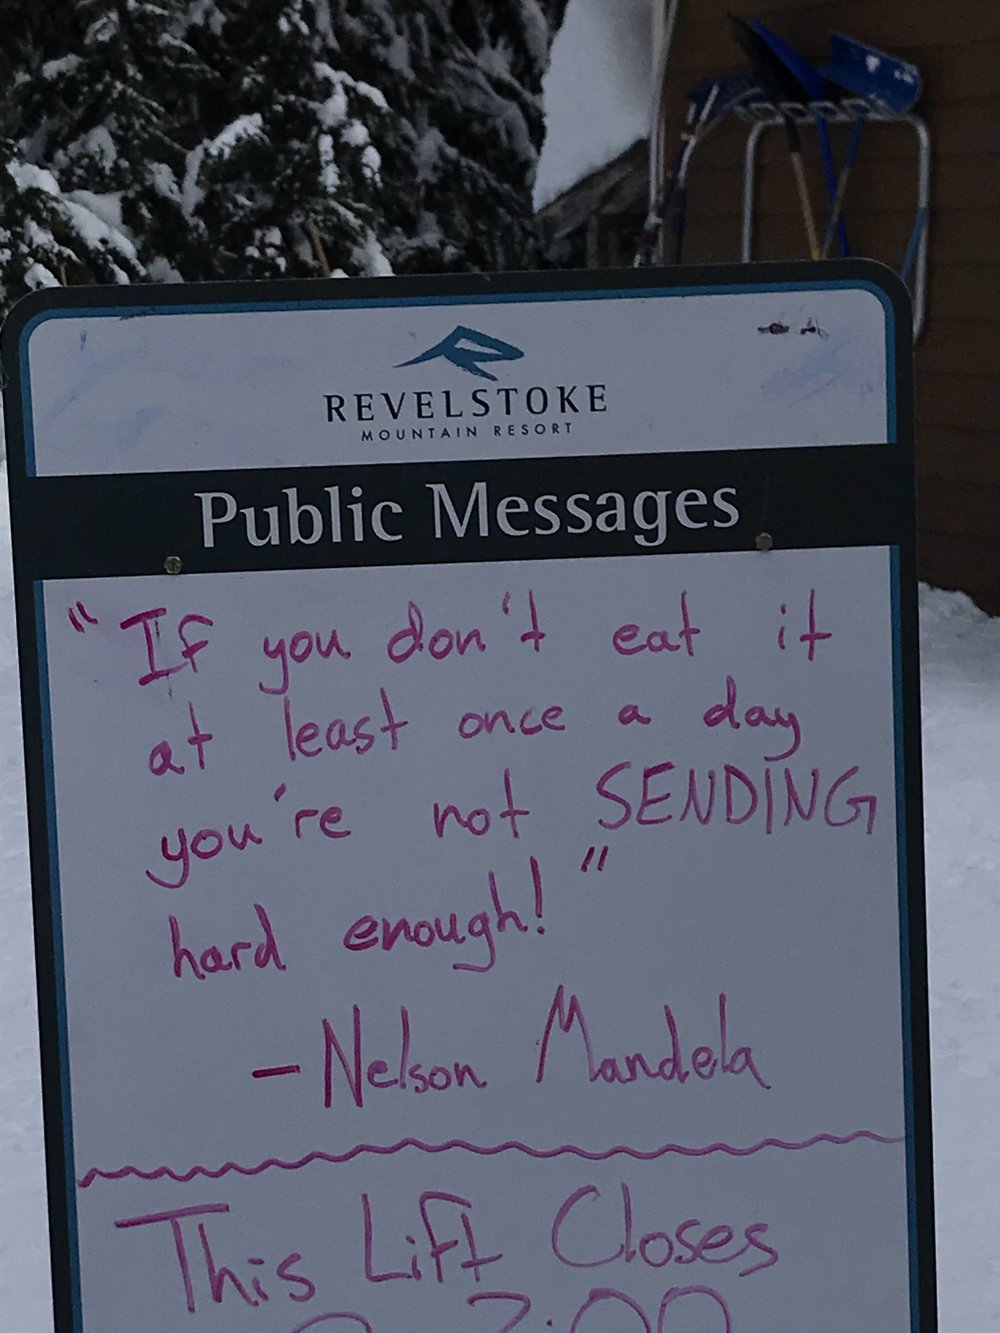 Wise words at Revelstoke.